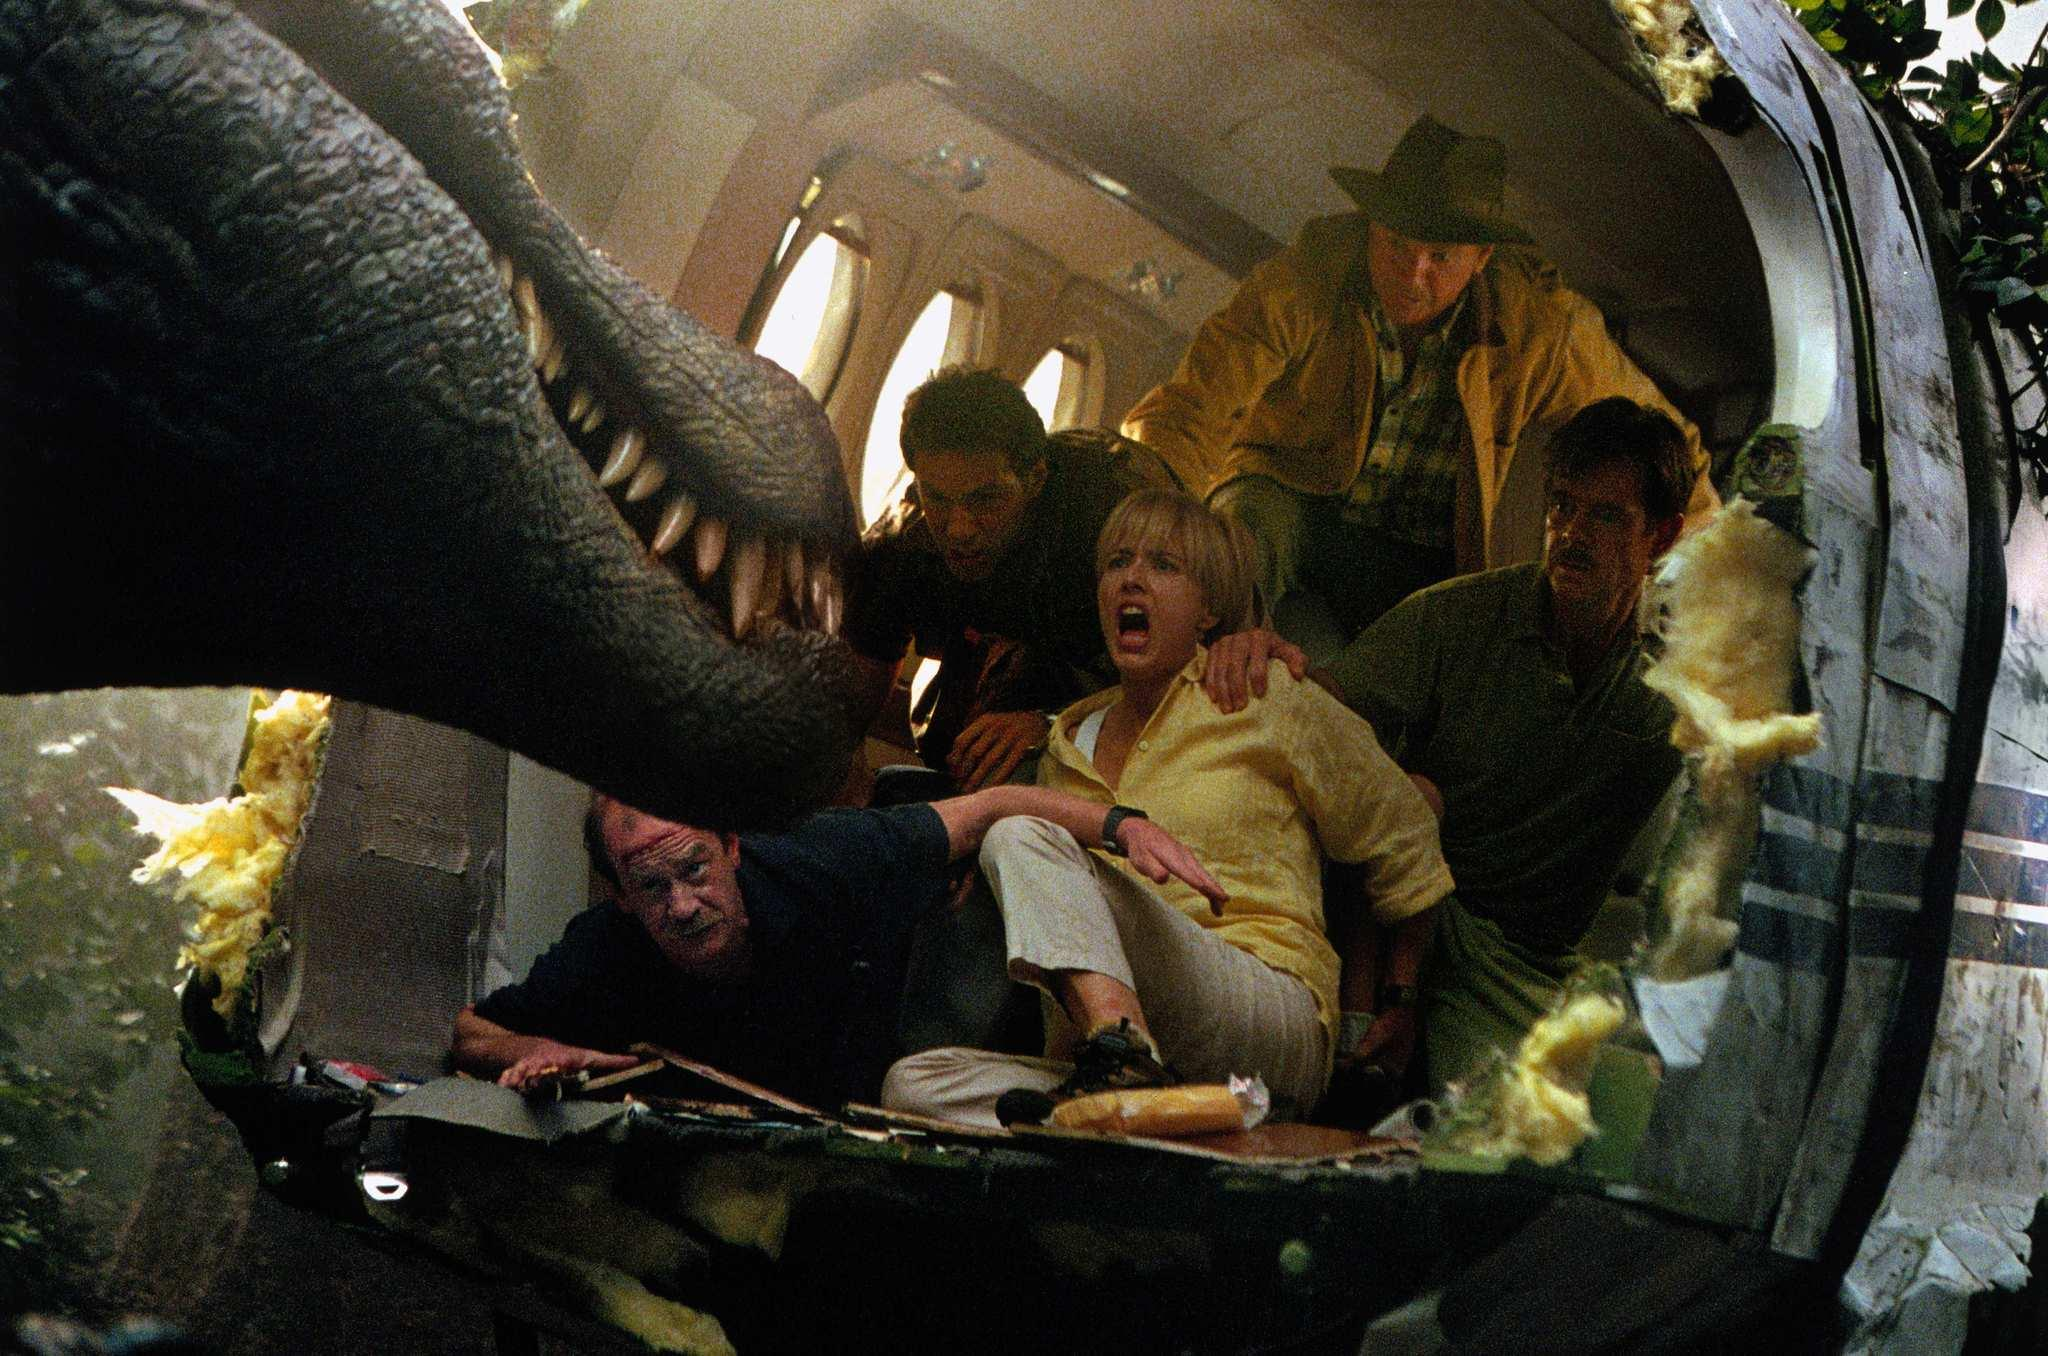 jurassic park latest pictures - photo #5